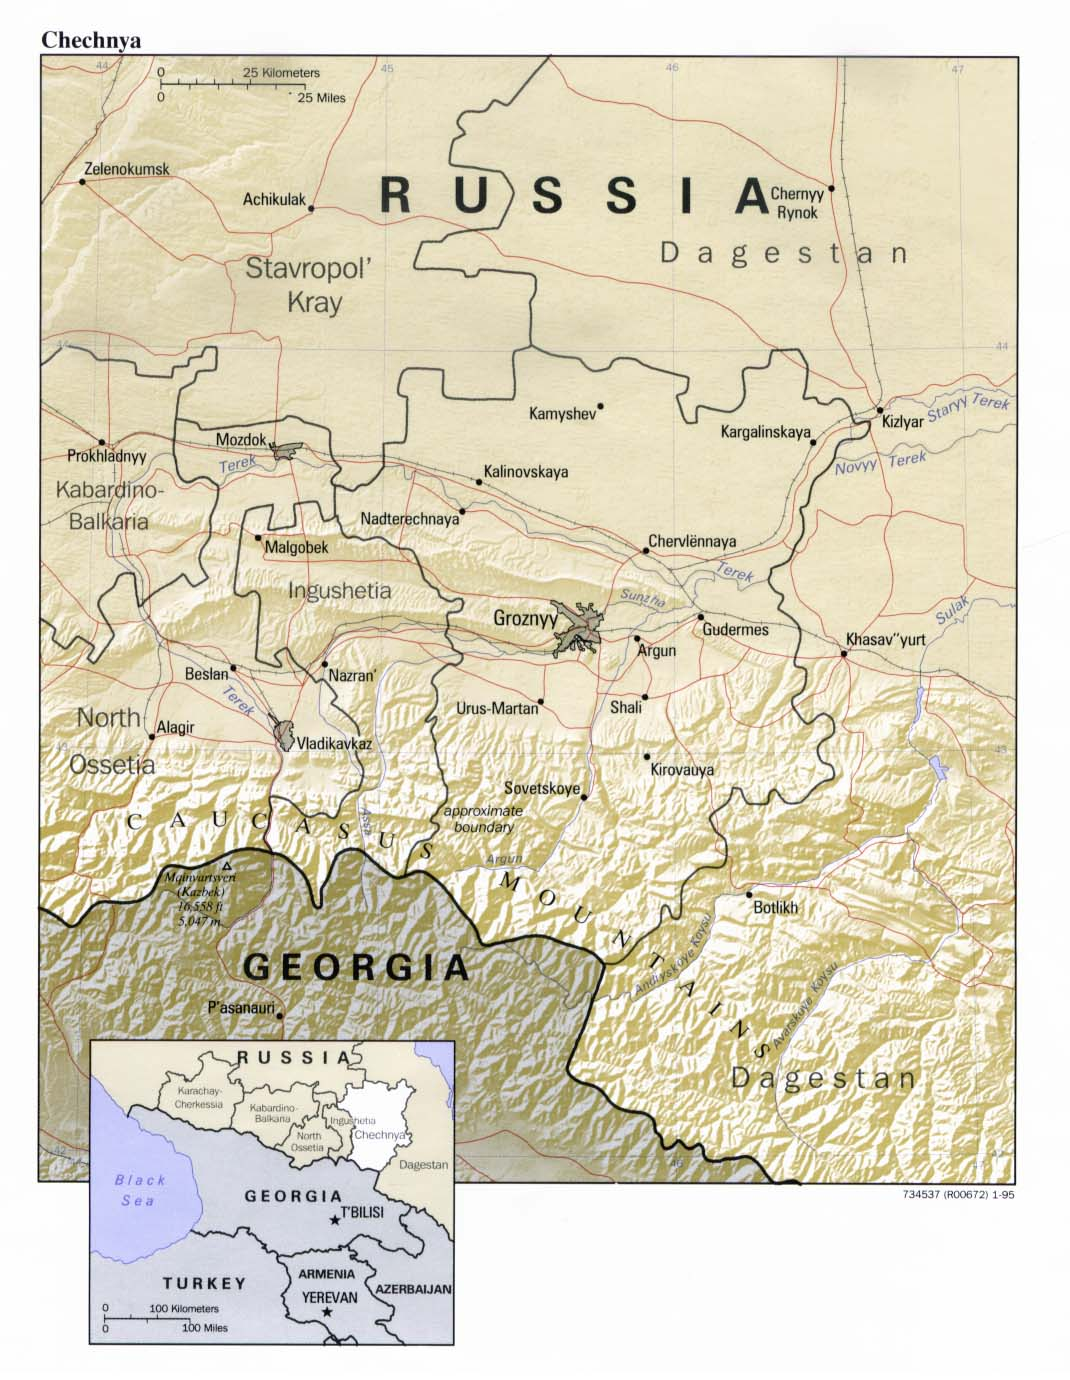 Chechnya (Chechen Republic) Maps - Perry-Castañeda Map Collection on